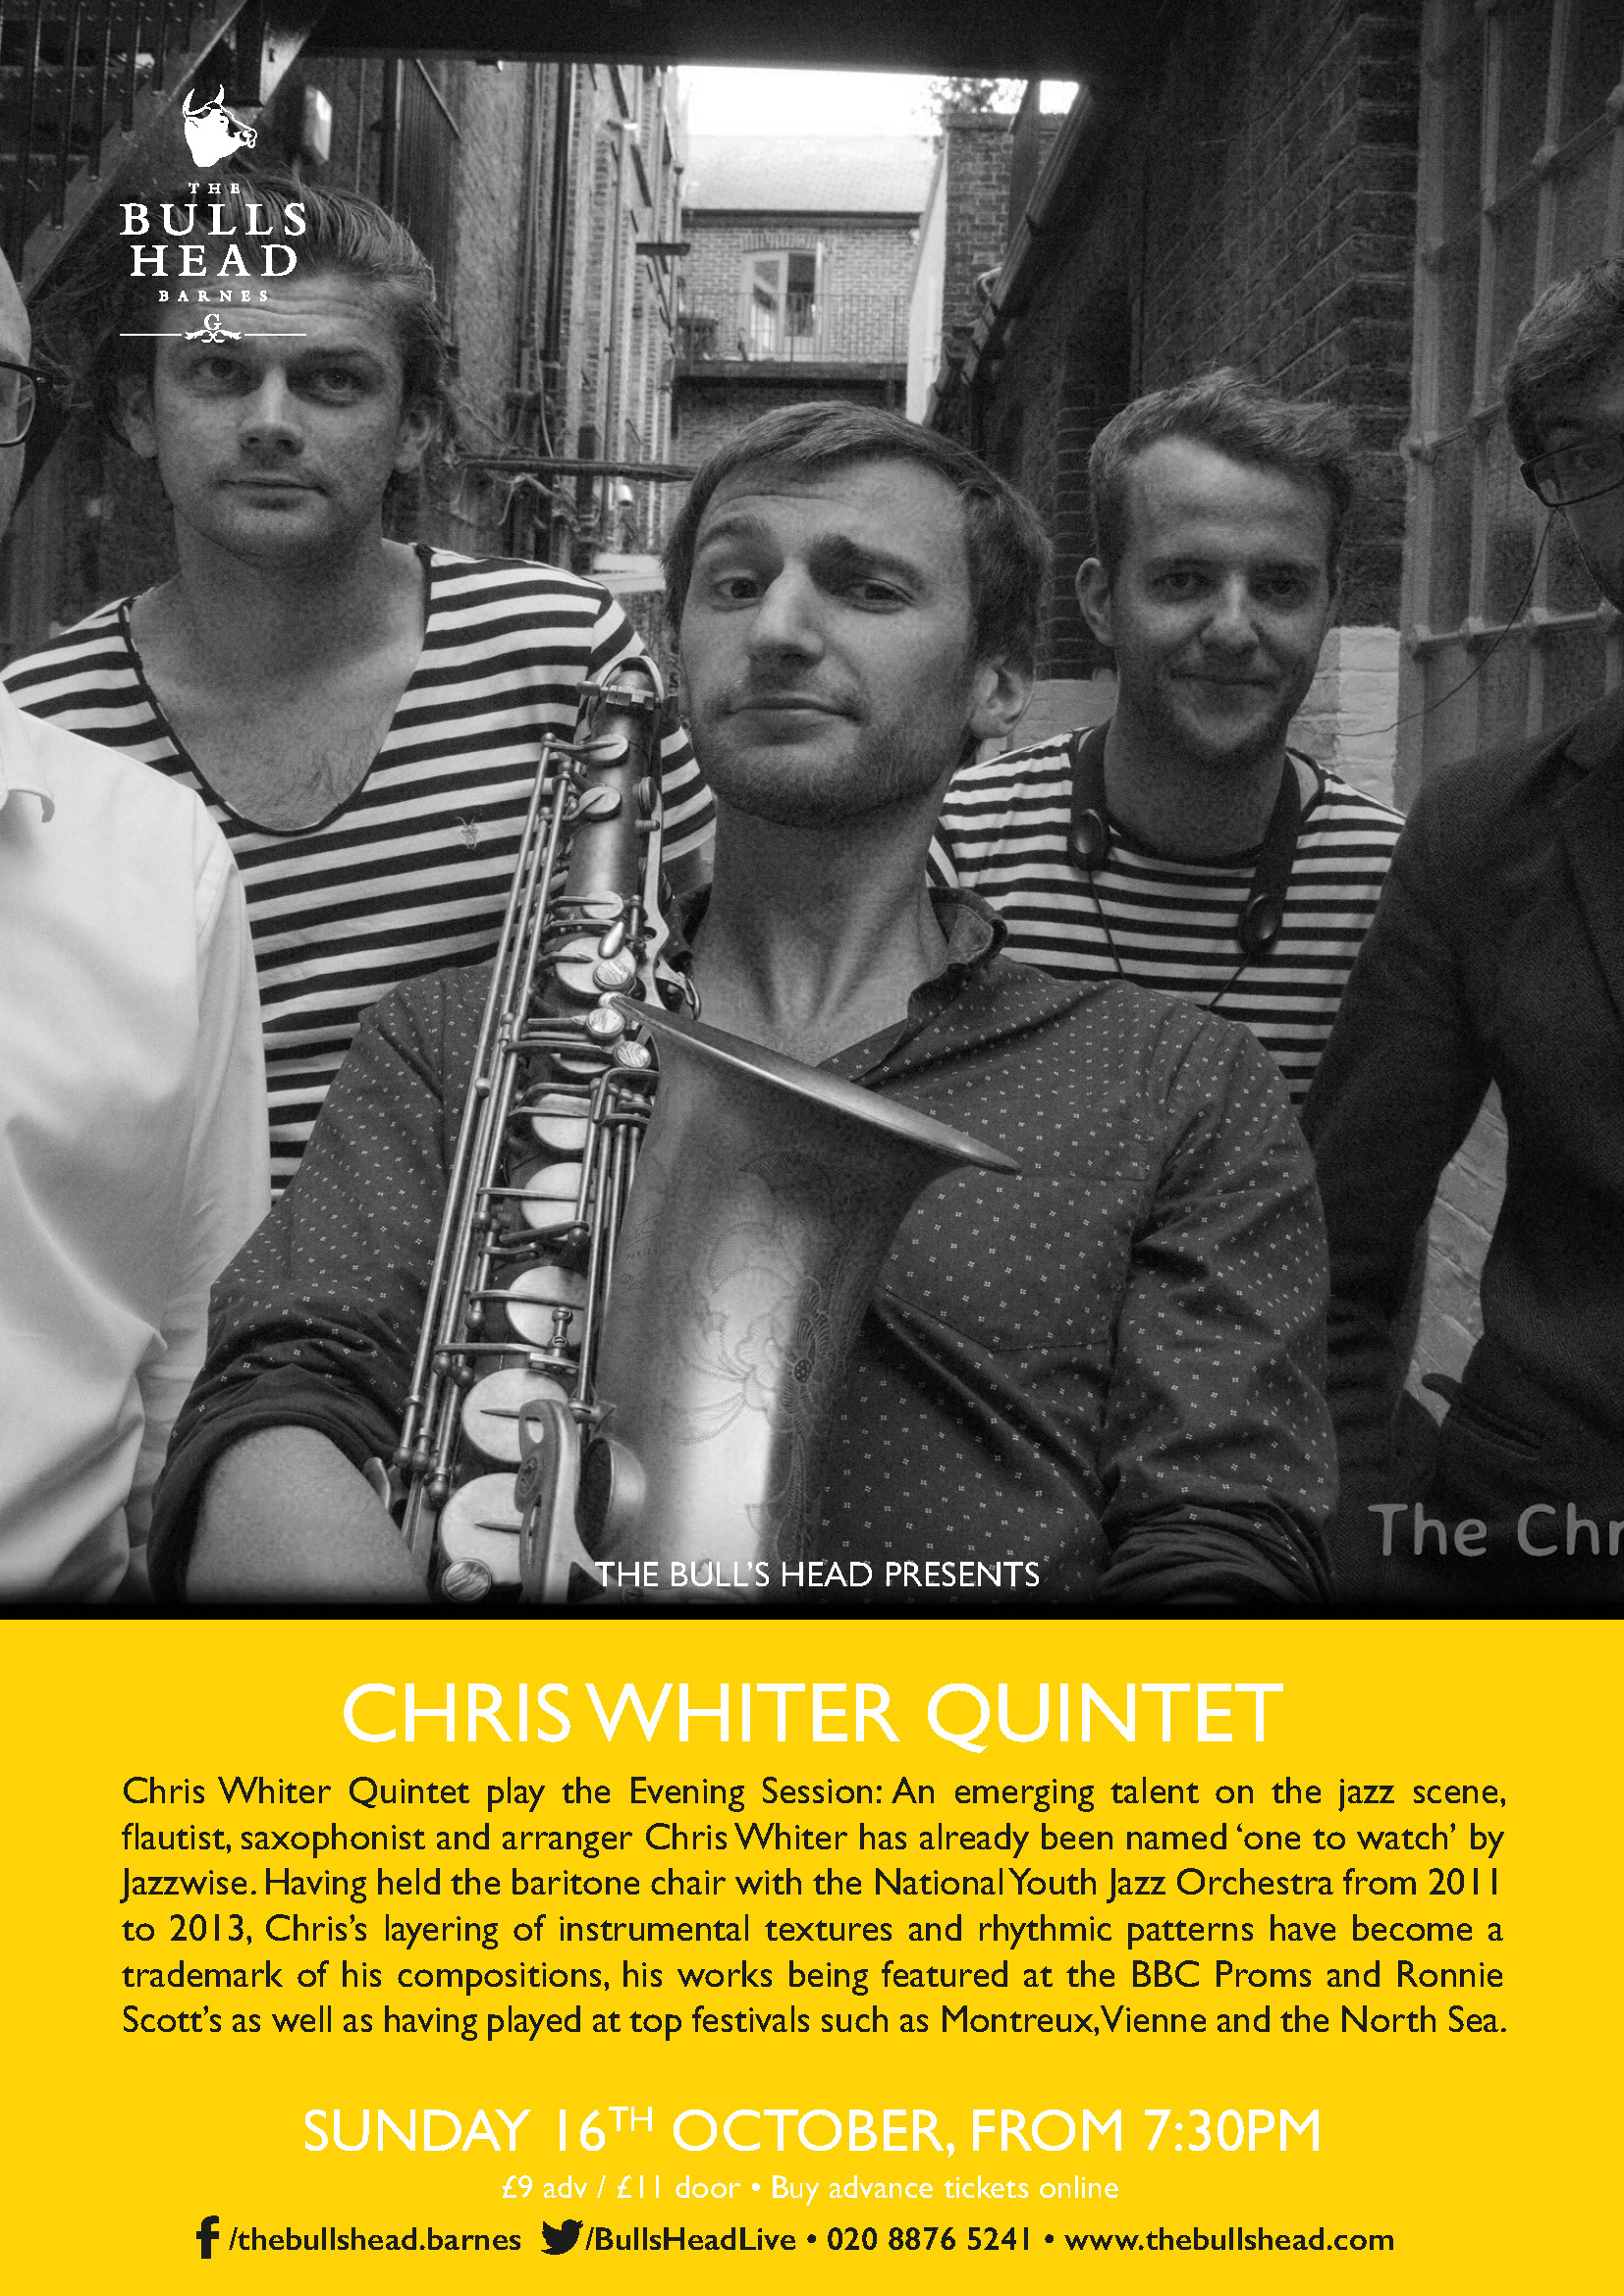 Chris Whiter Quintet play the Evening Session